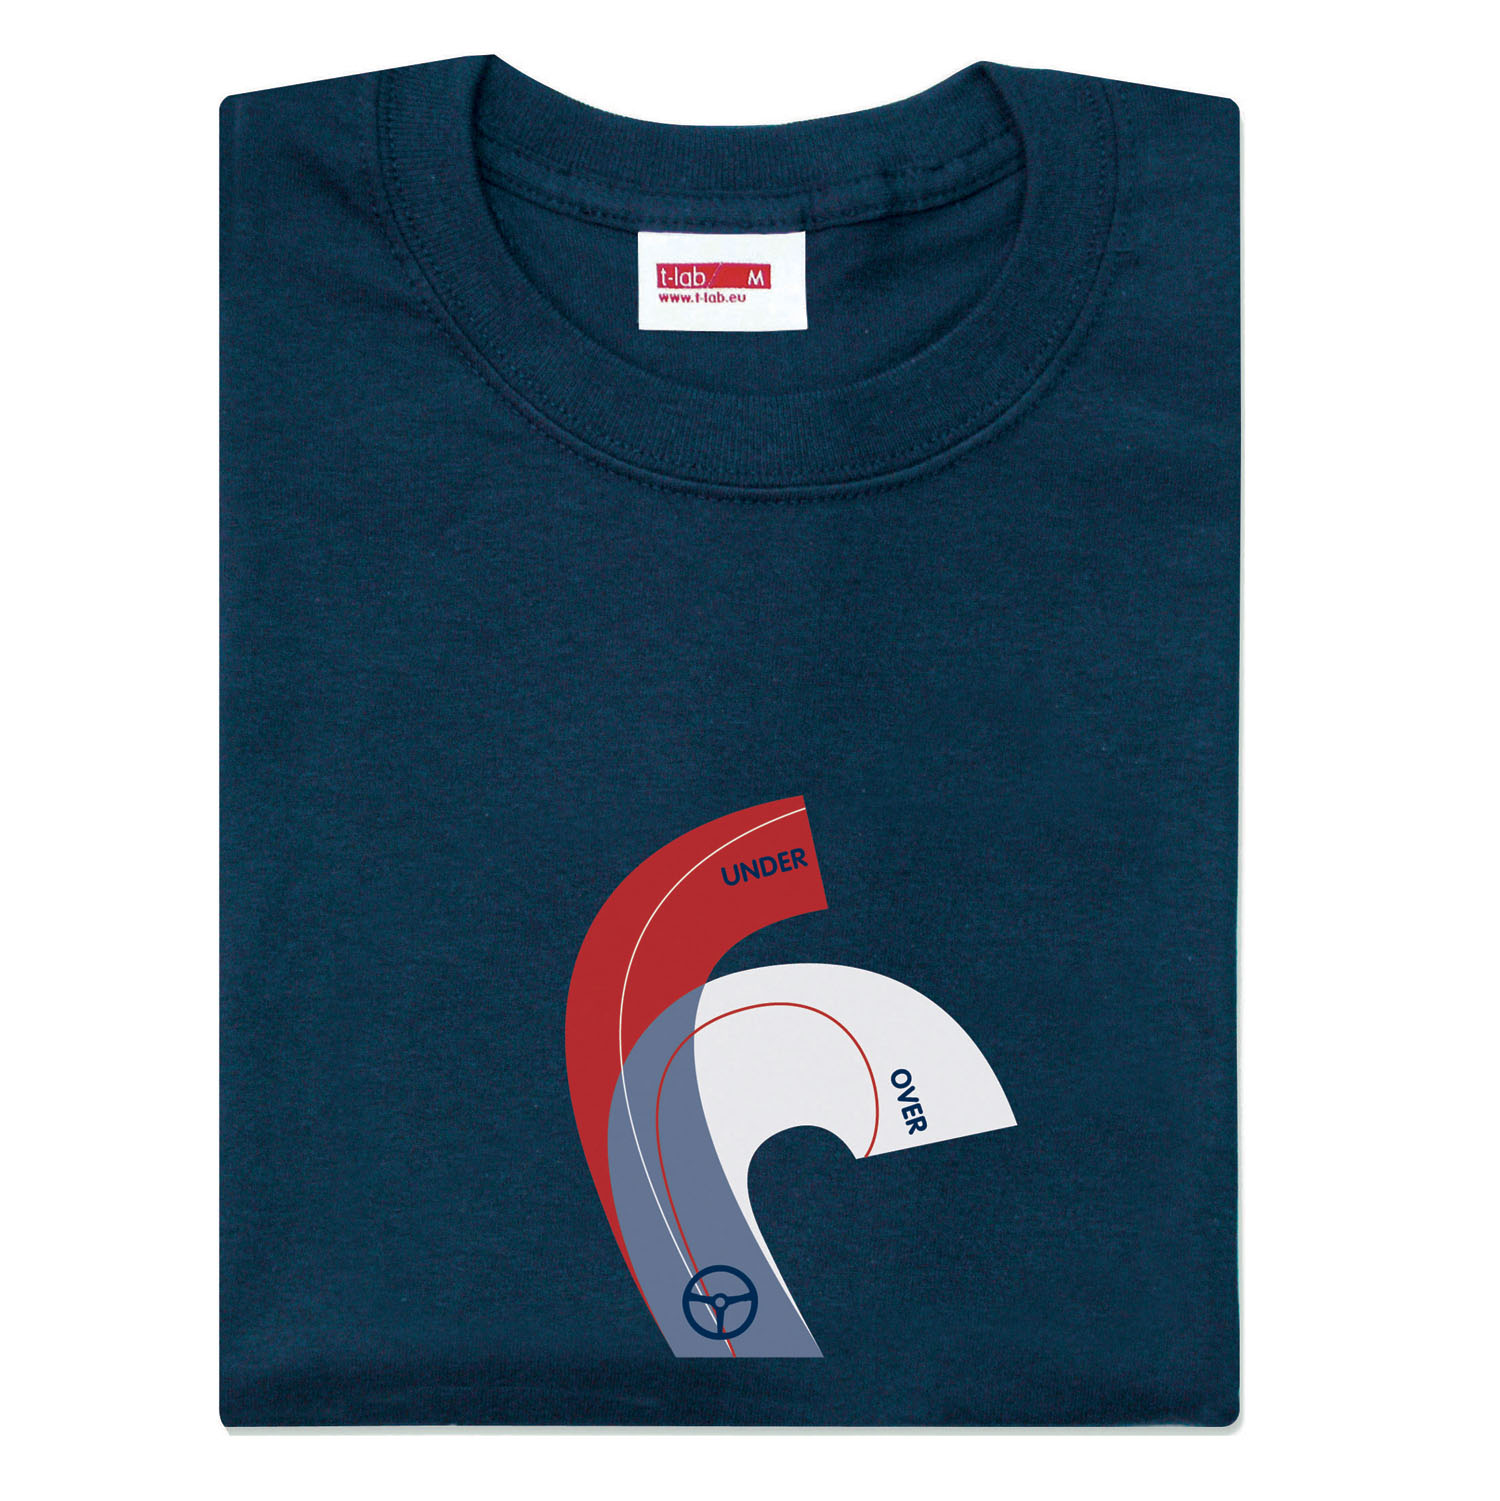 T-lab Over & Out mens t-shirt navy chest